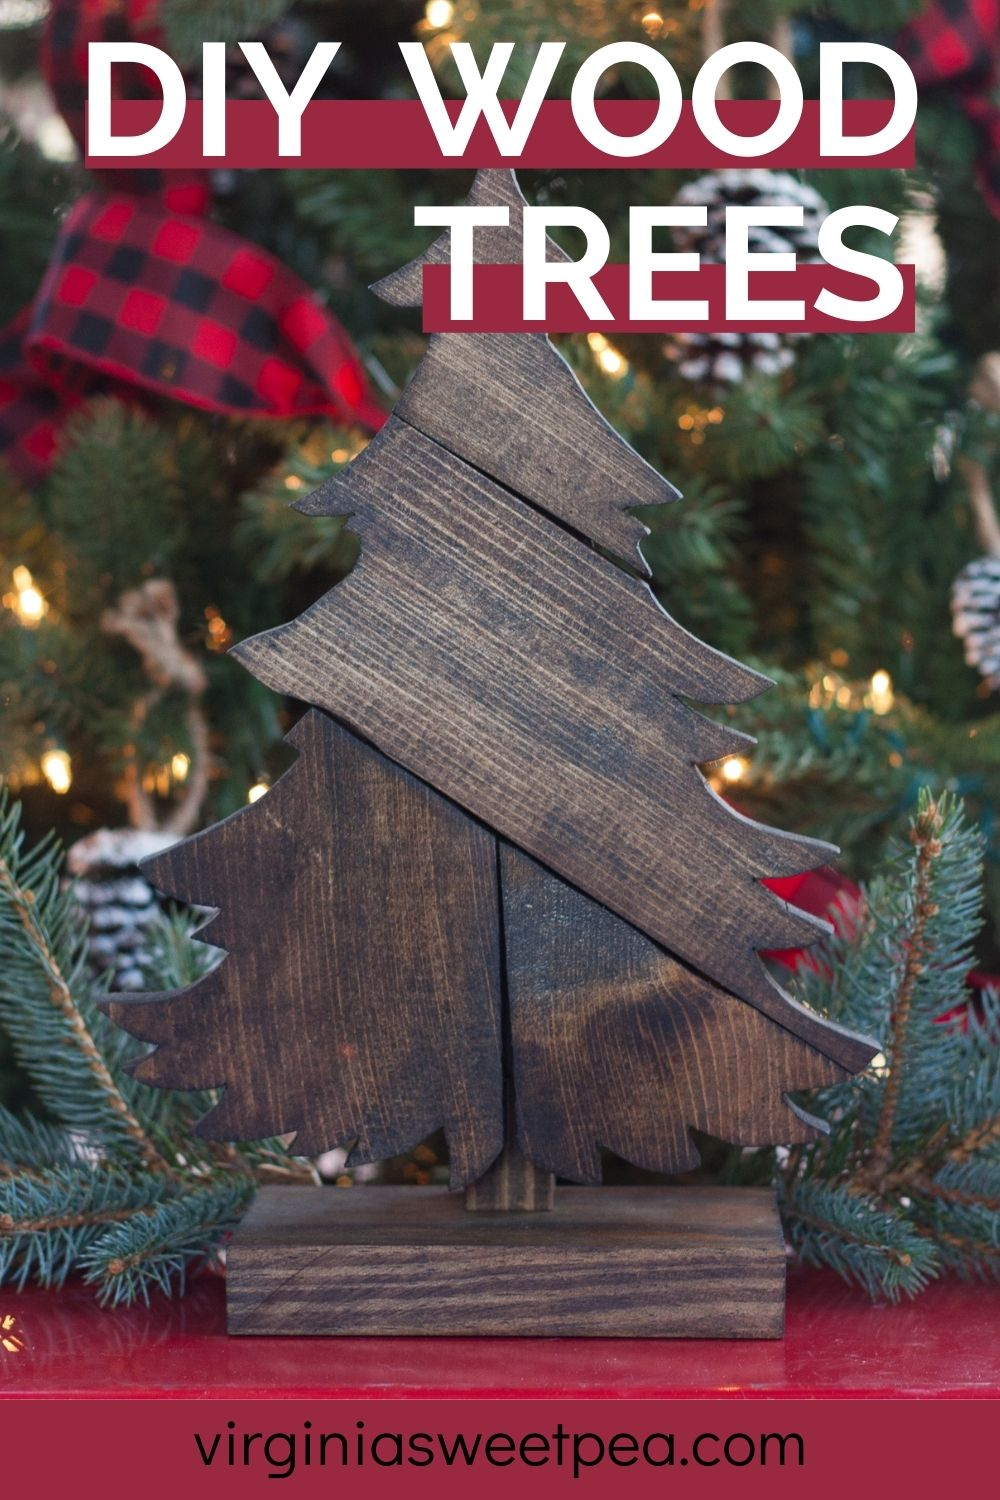 DIY Wood Tree - Make a tree using scrap wood and customize with stain color. This project makes a great gift!  via @spaula